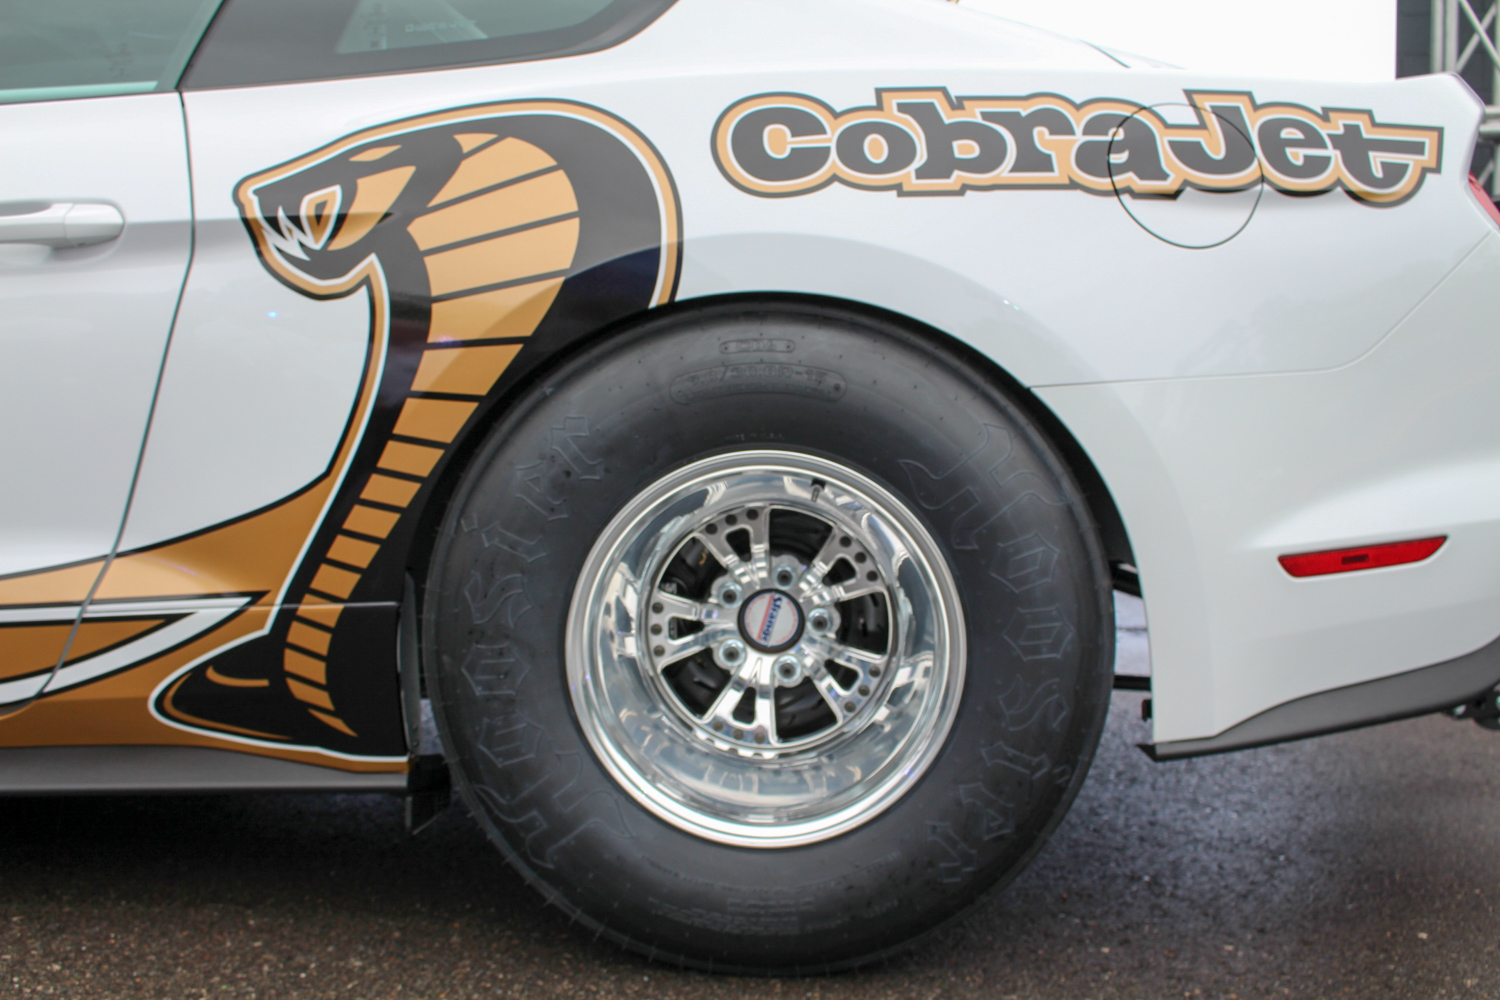 2018 Ford Mustang Cobra Jet rear tire